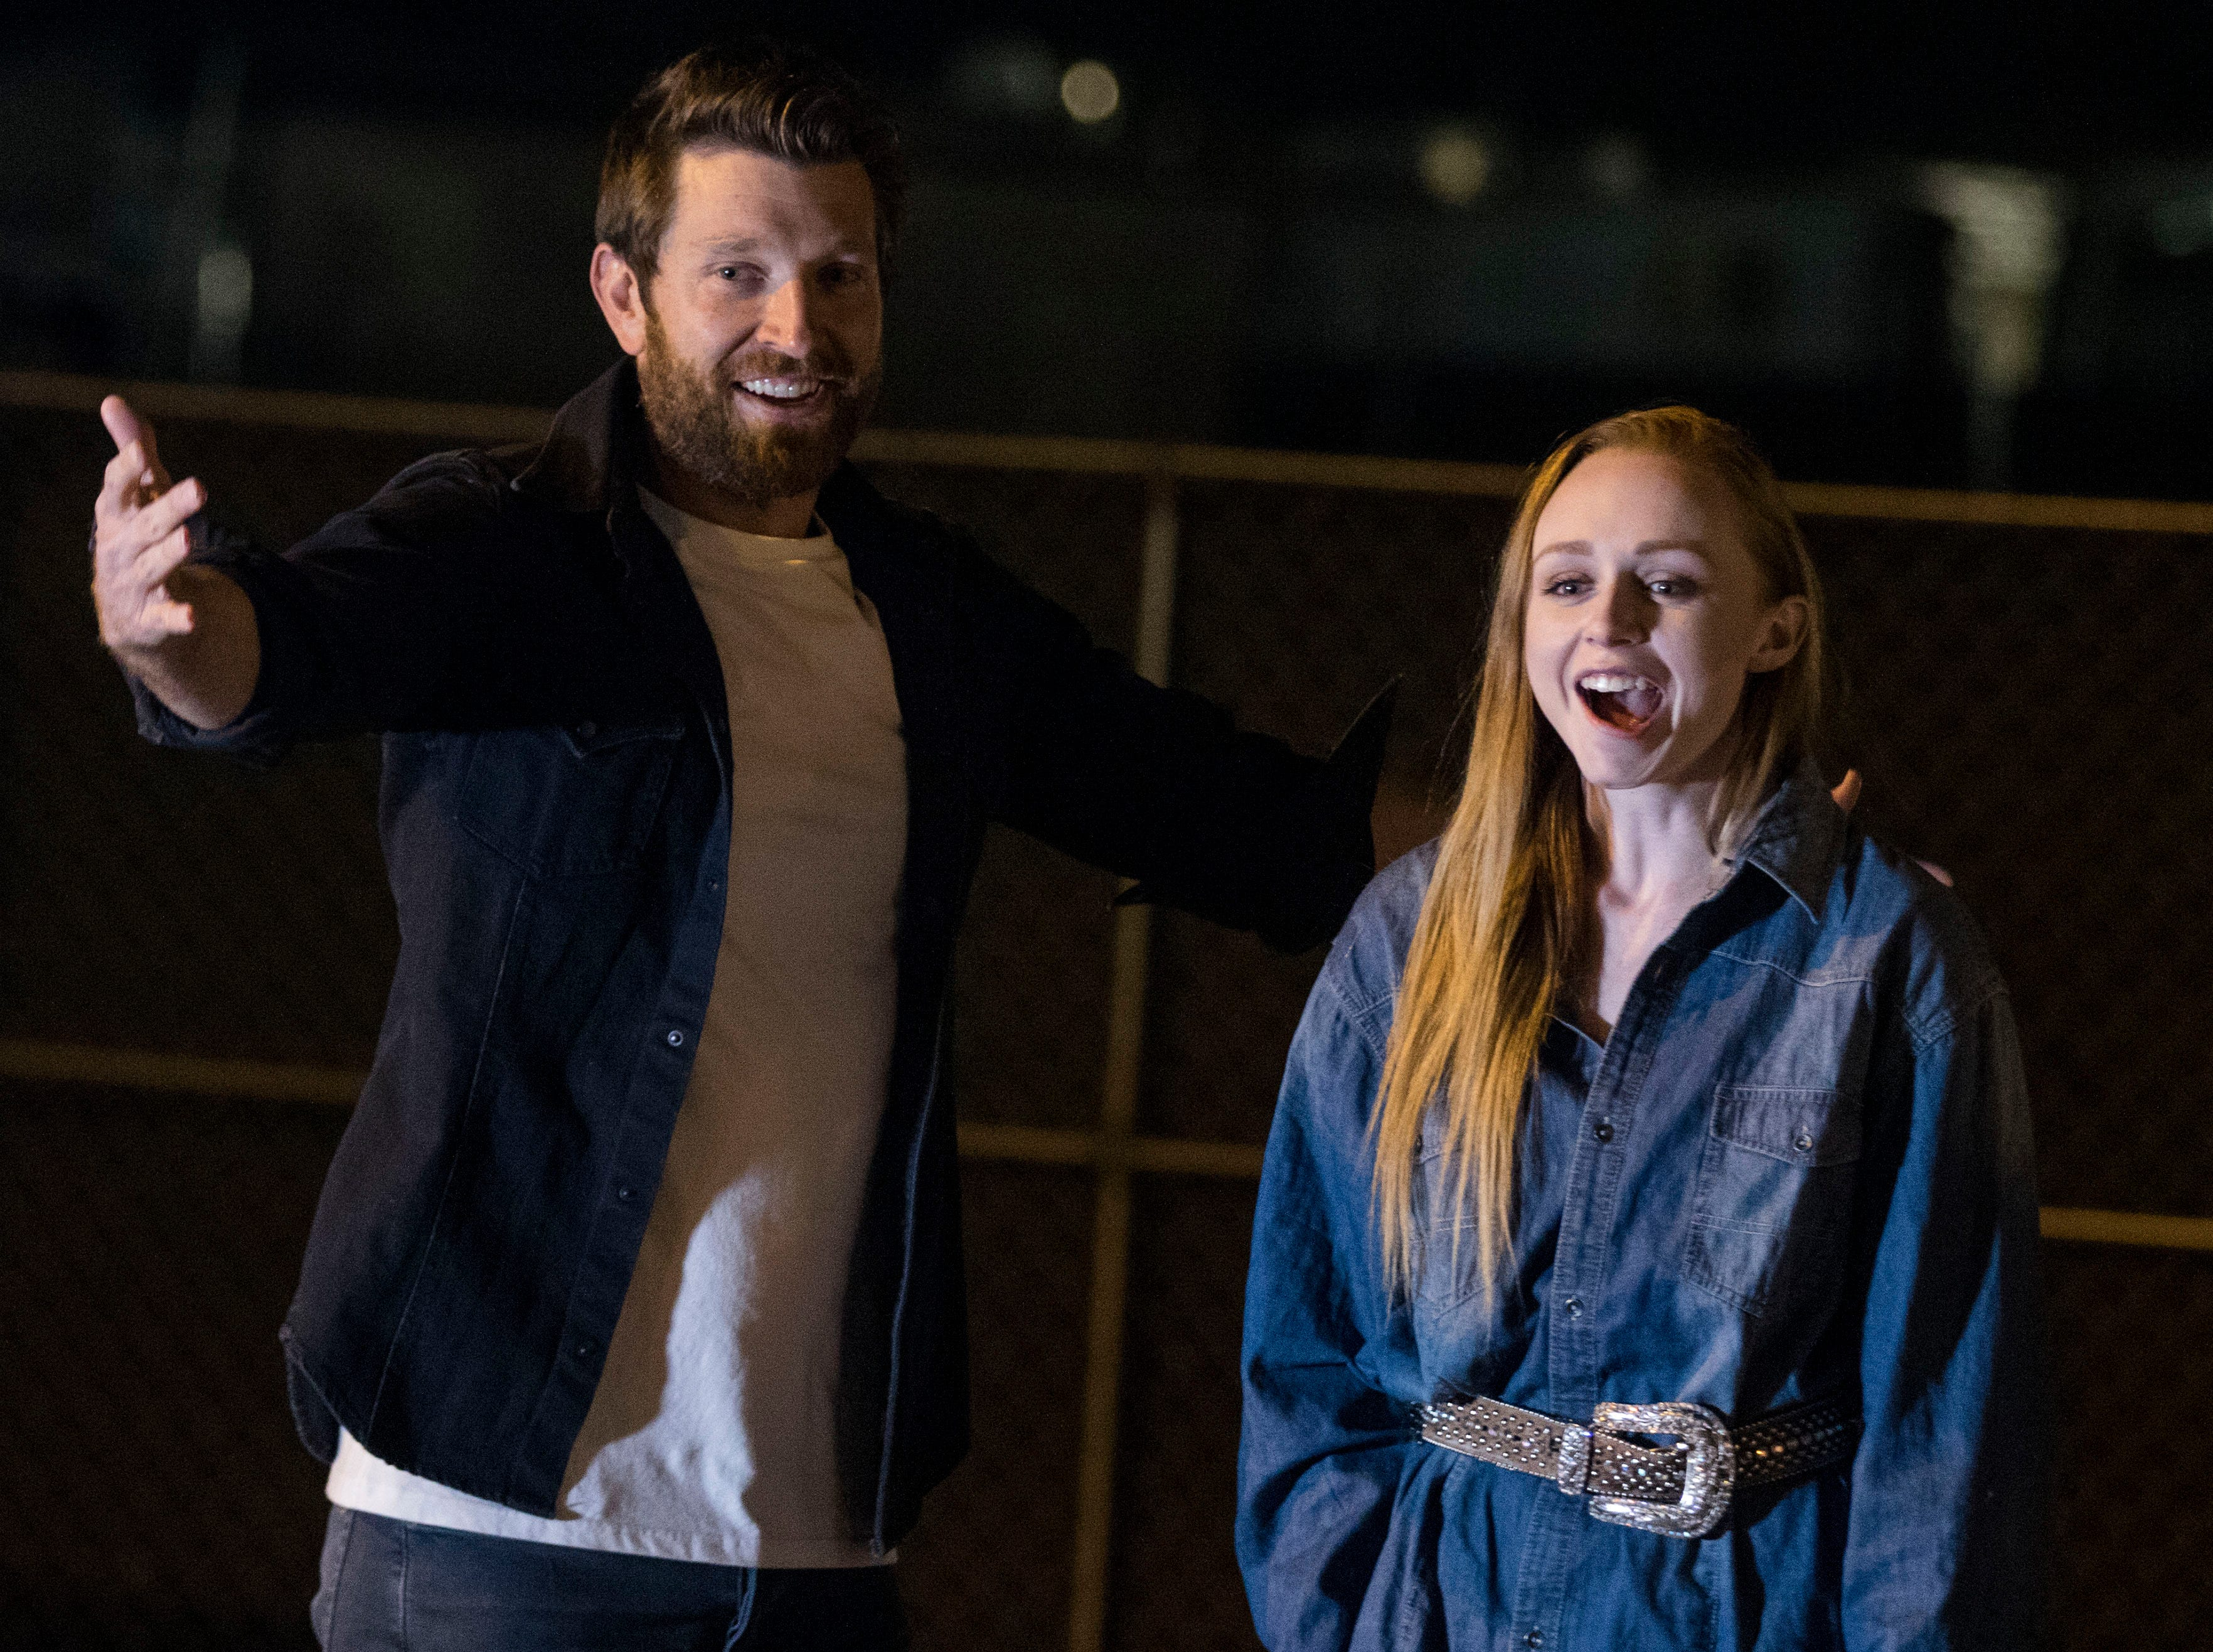 After sinking the game-winning shot, country superstar Brett Eldredge looks for a hug from Kayla Coffey of Tucson, who was picked from the audience for the chance meeting with Eldredge, while at Country Thunder Arizona on April 11, 2019, in Florence, Ariz.